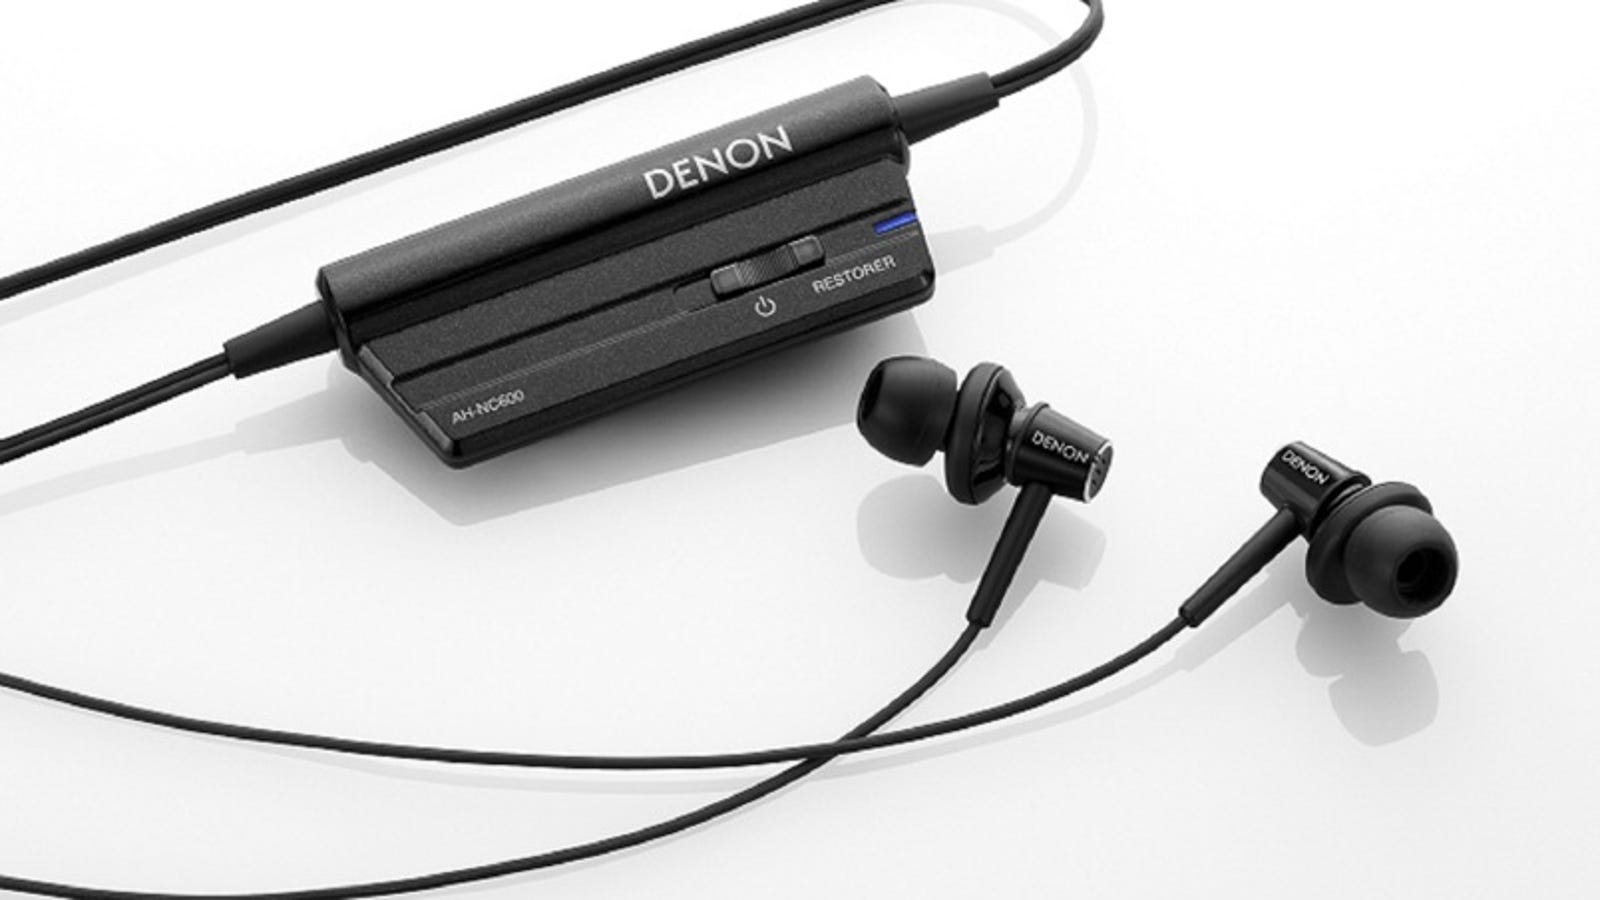 wireless earbud neckband headset retractable - Denon AH-NC600 Earbuds Cancel Noise, Right Down To Touched Cables